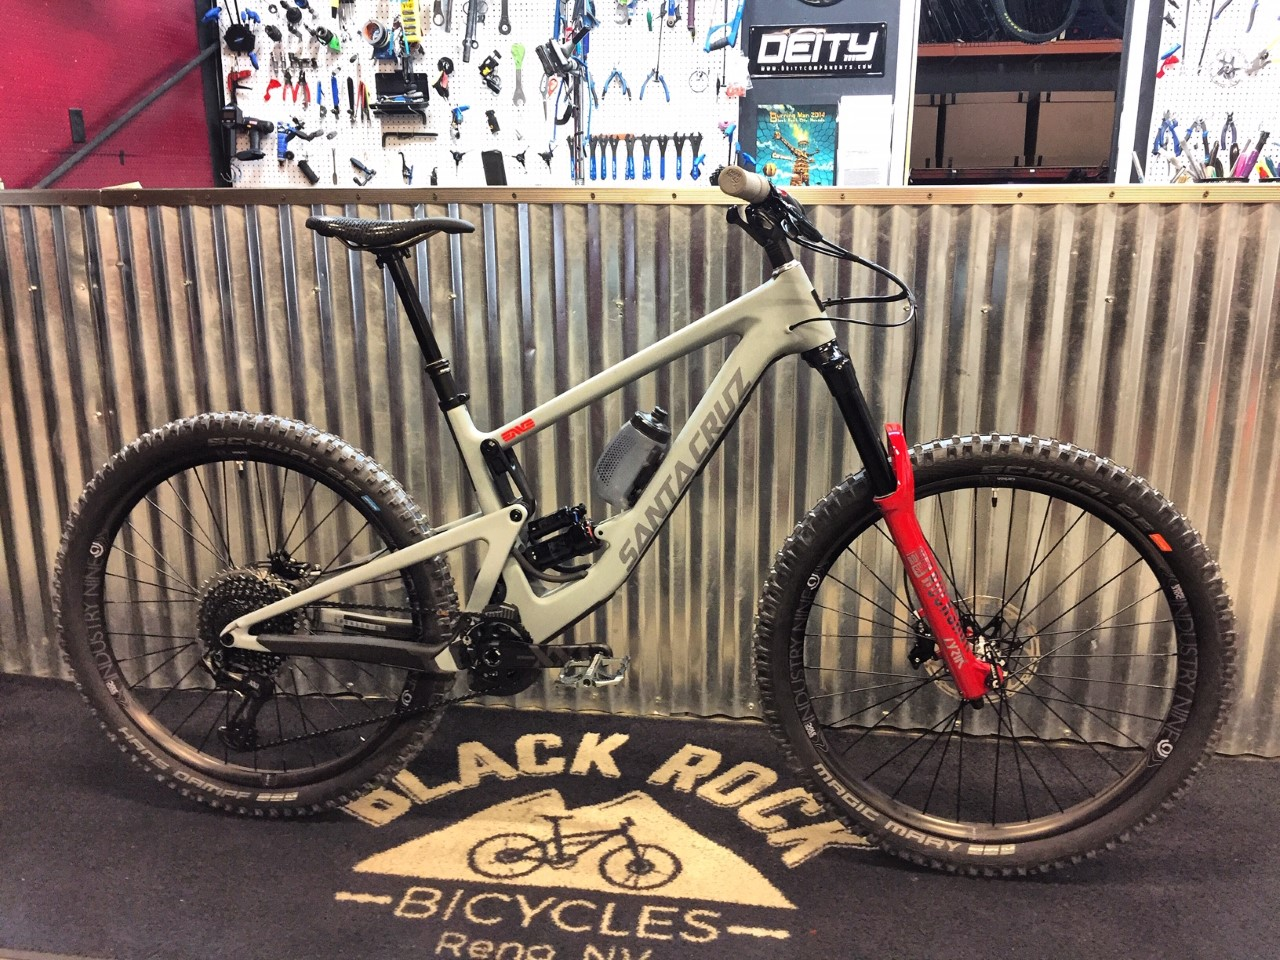 8eea07f3327 Santa Cruz Bikes are available in Reno at Black Rock Bicycles. Each and  every one of these bikes is the distillation of the desire to ride and  build the ...